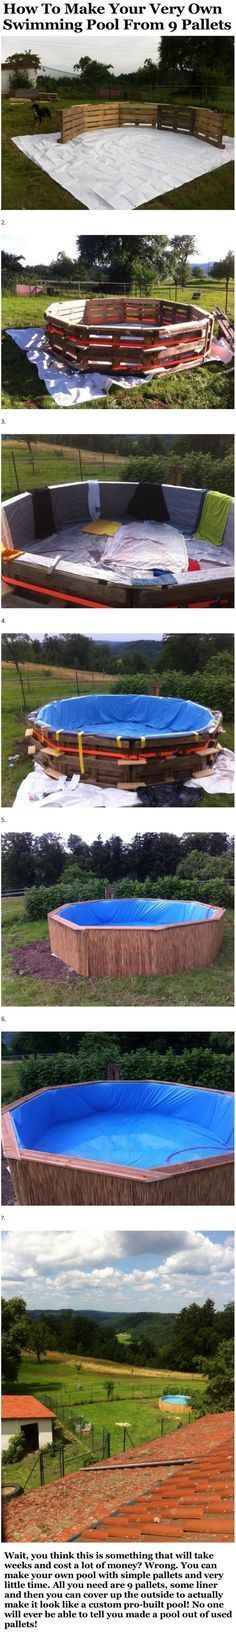 Learn How To Make A Beautiful Swimming Pool Out Of 10 Pallets garden backyard diy furniture diy ideas easy diy how to home crafts interesting pallets tutorials life hacks life hack easy hacks home hacks good to know viral